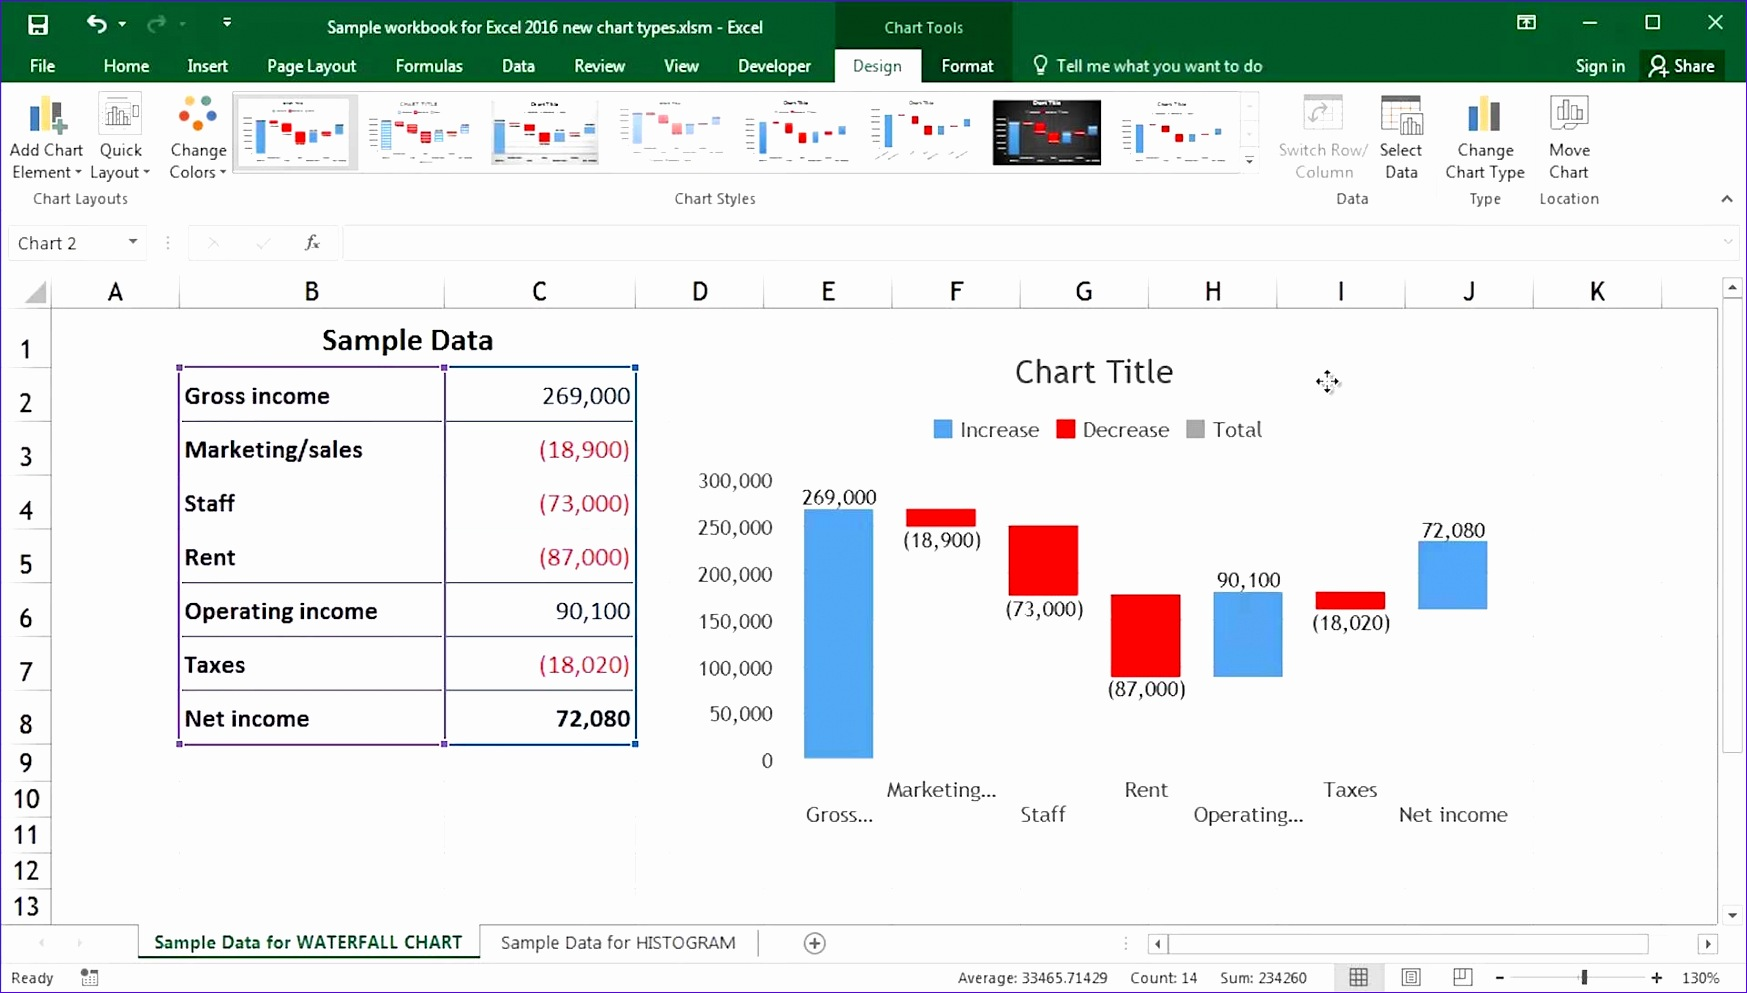 excel waterfall chart design excel waterfall chart excel waterfall chart example excel waterfall chart with negative values excel waterfall